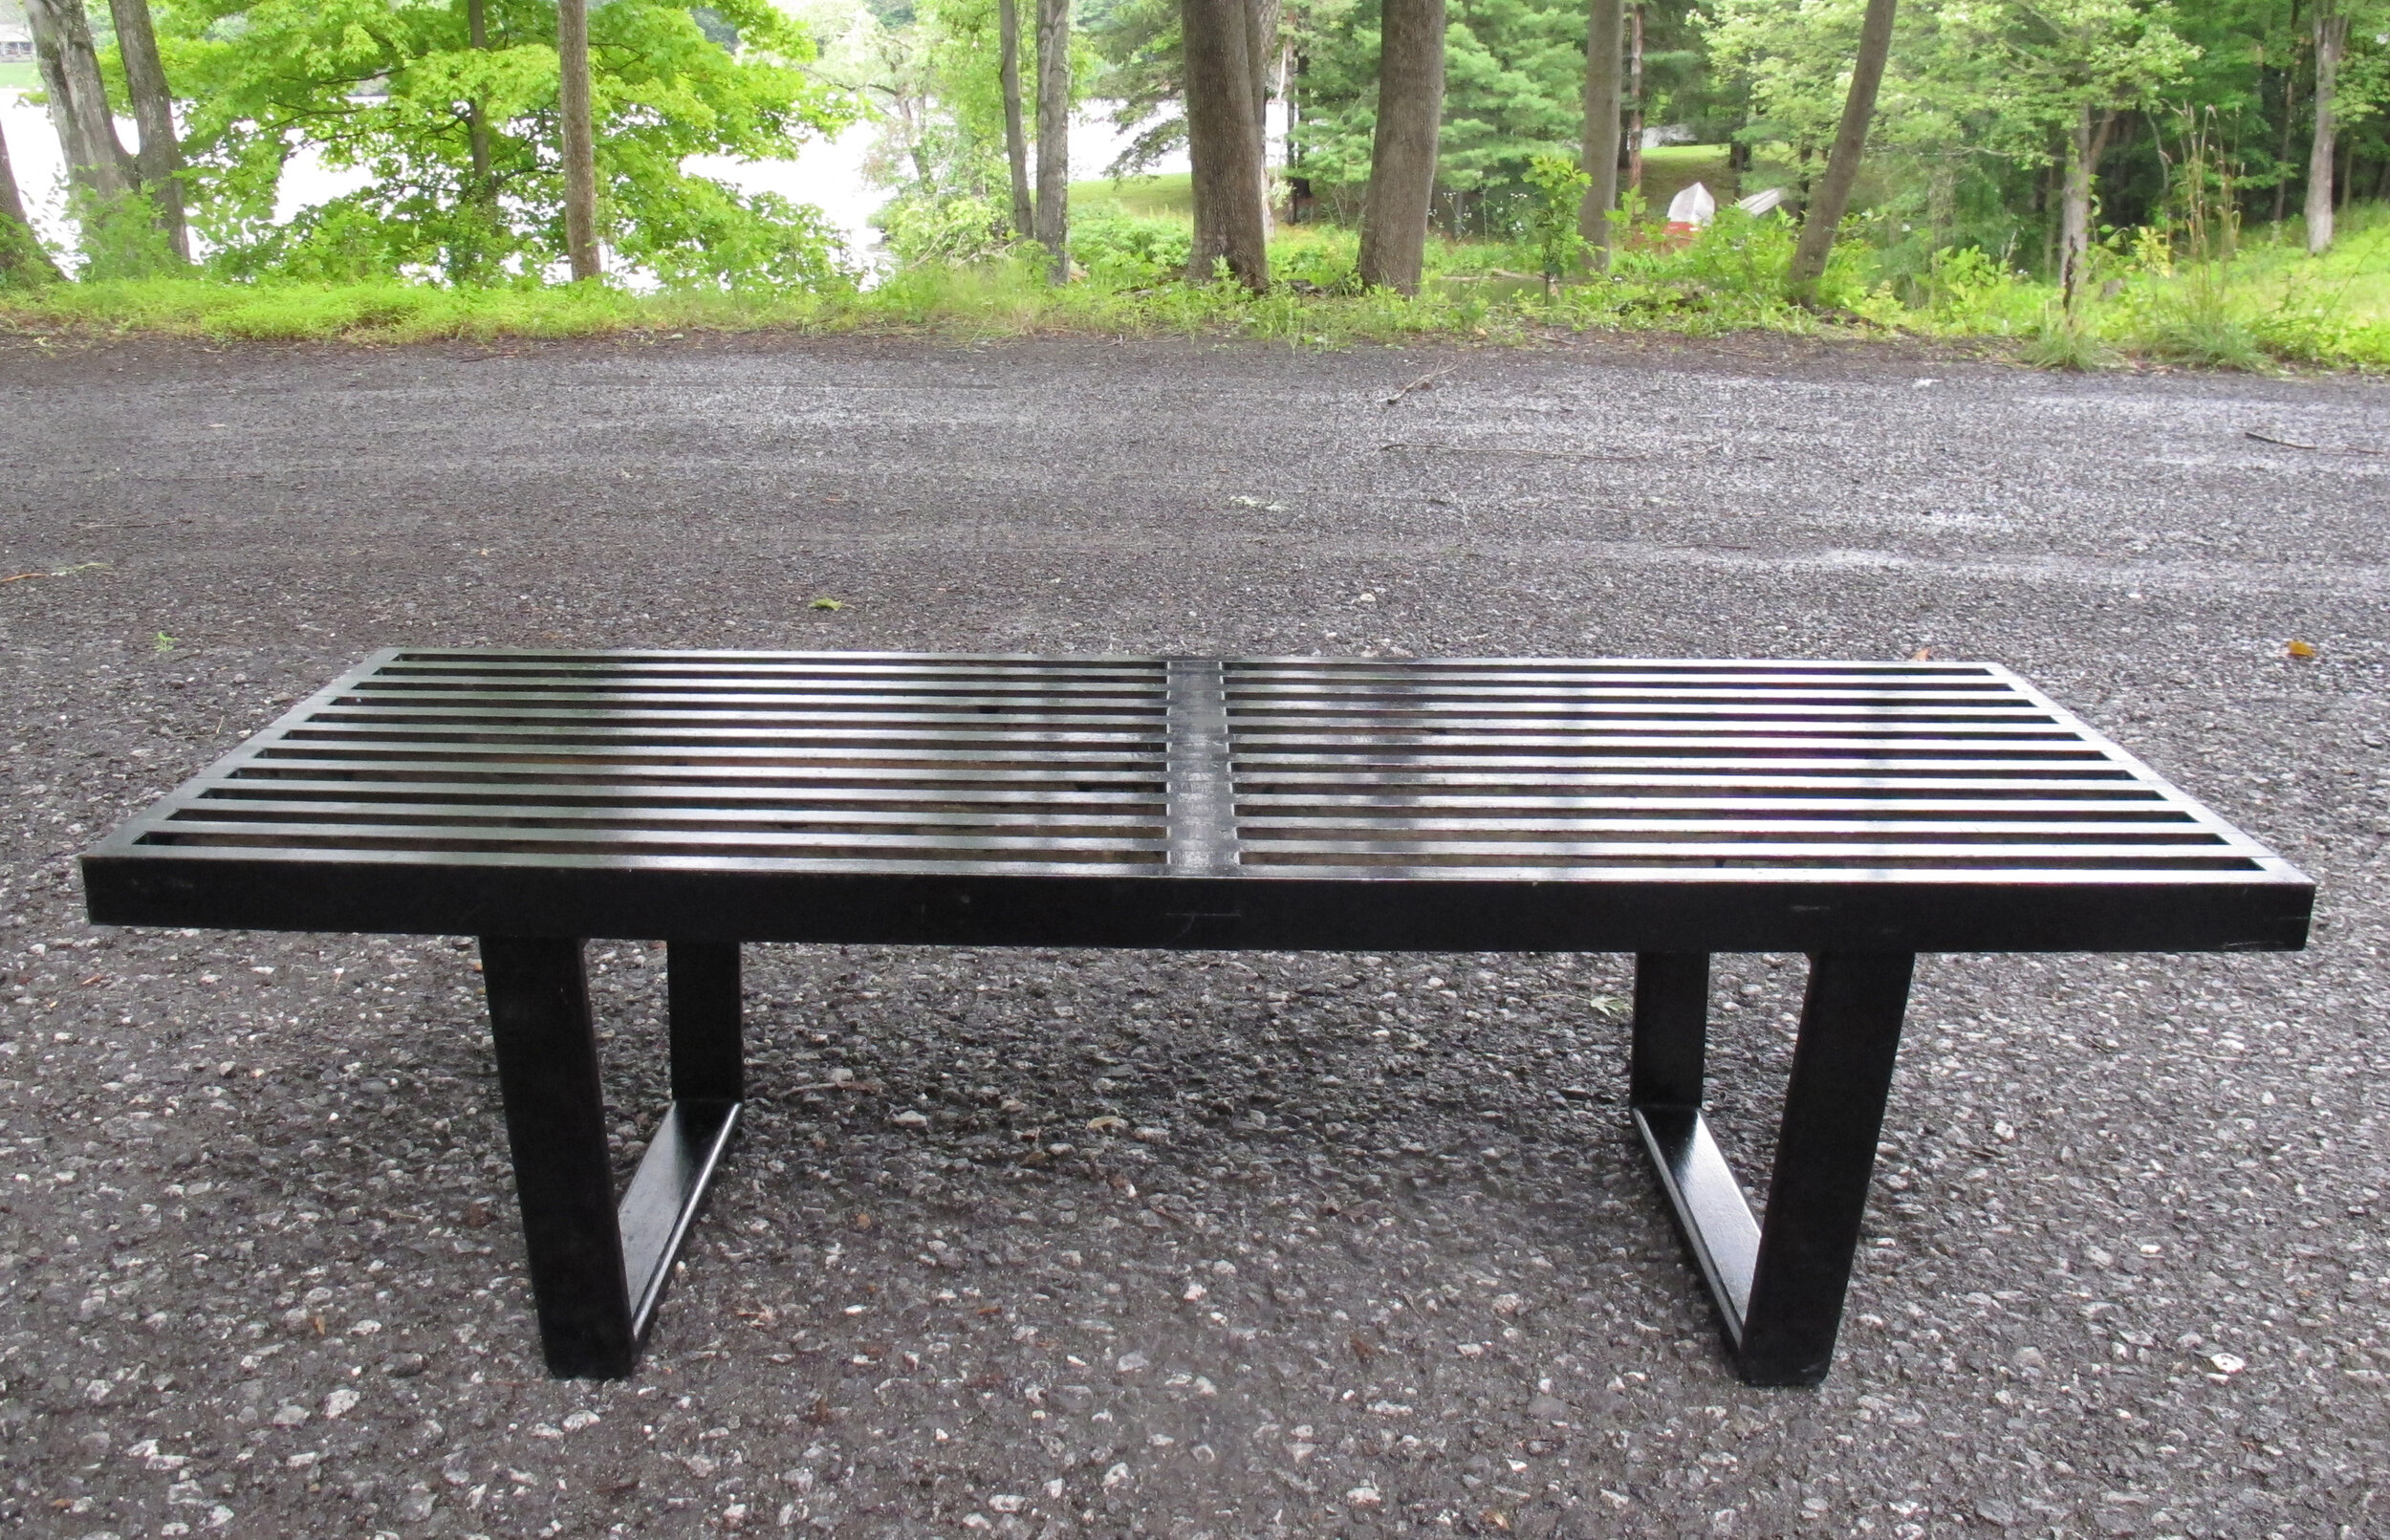 1949 GEORGE NELSON HERMAN MILLER SLAT BENCH COFFEE TABLE MODEL 4690